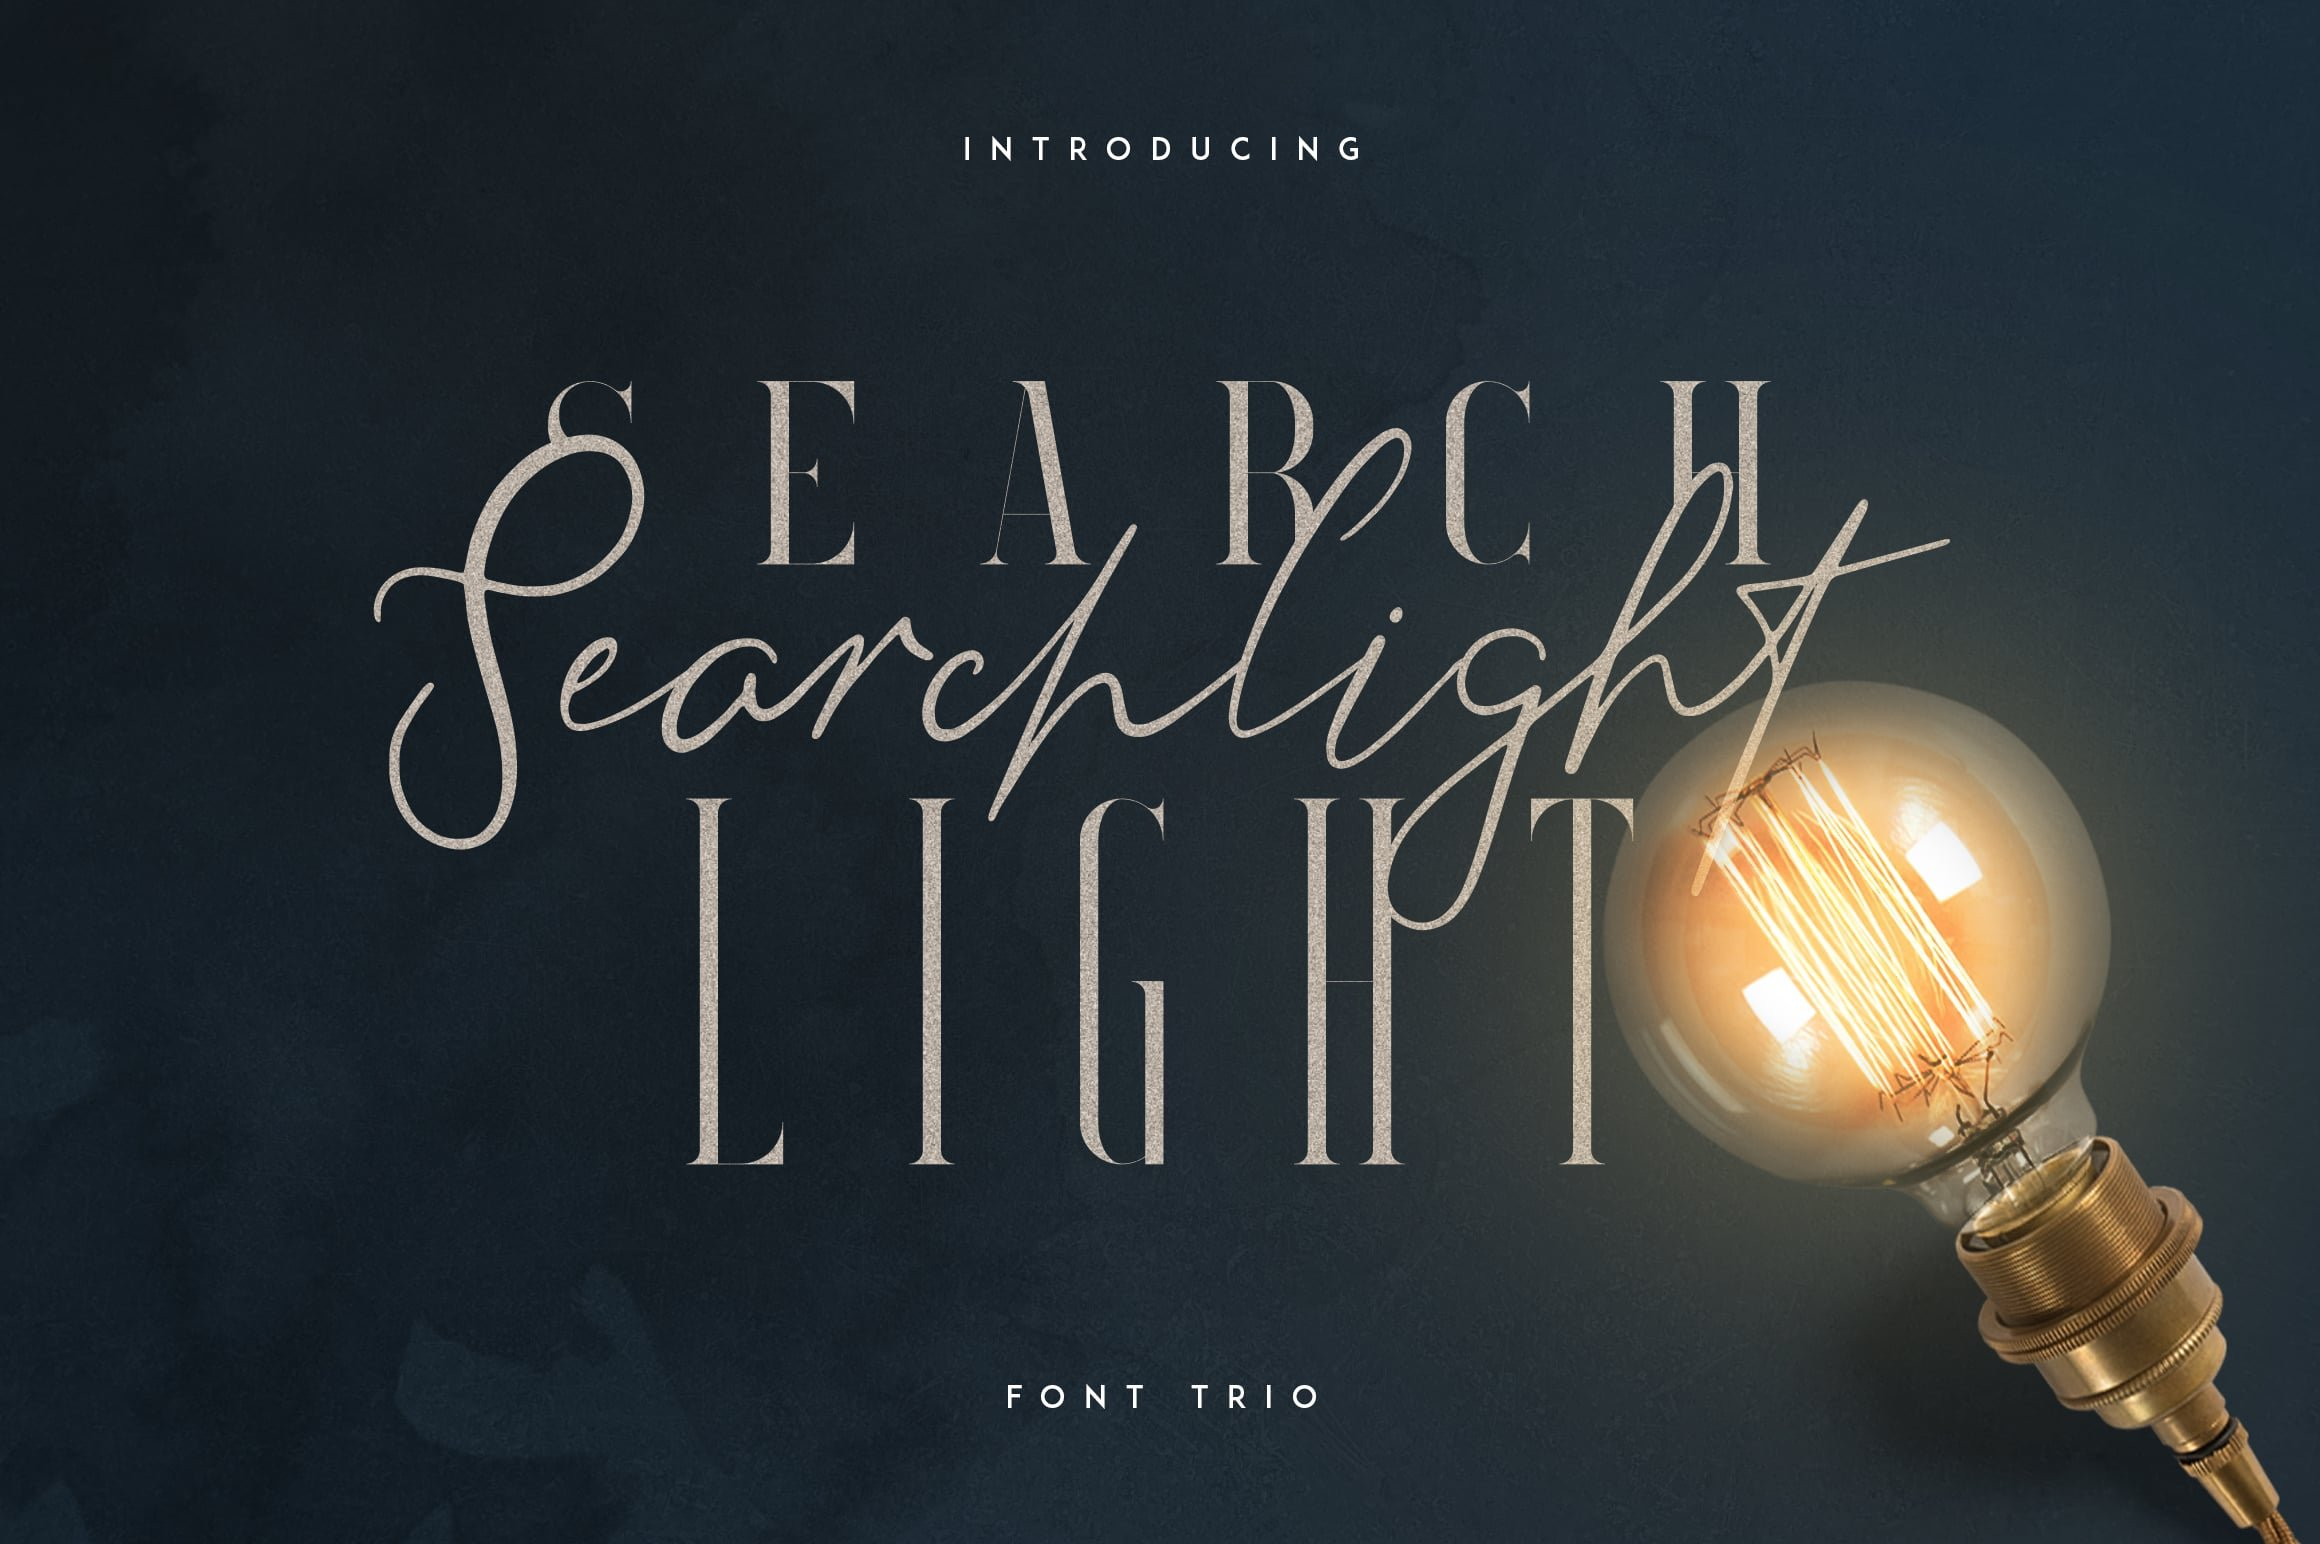 Stylish Fonts Download - Searchligth Font Trio $19 Only - 1 1